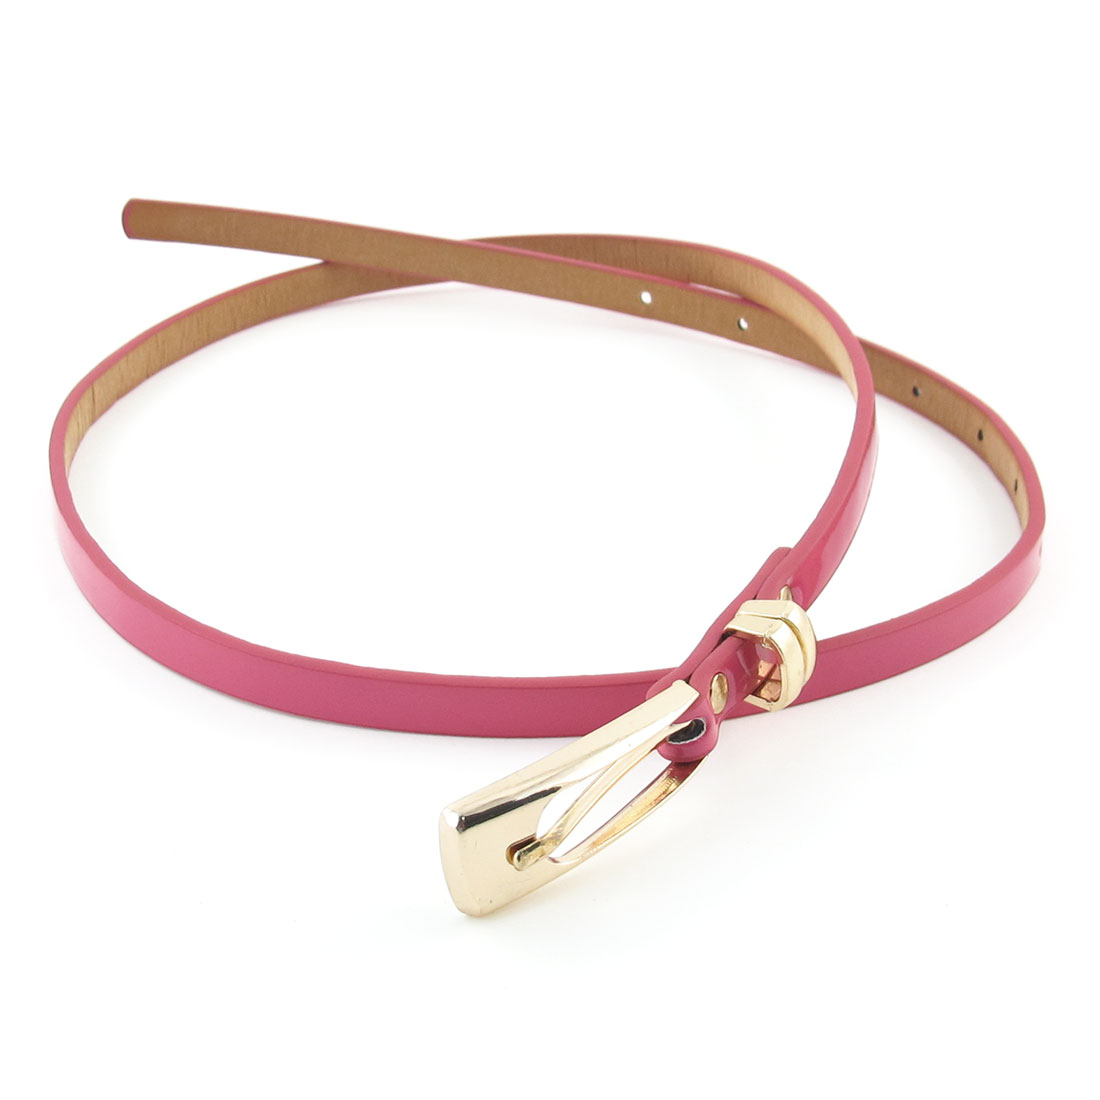 Single Pin Metal Buckle Fuchsia Faux Leather Waist Belt for Lady